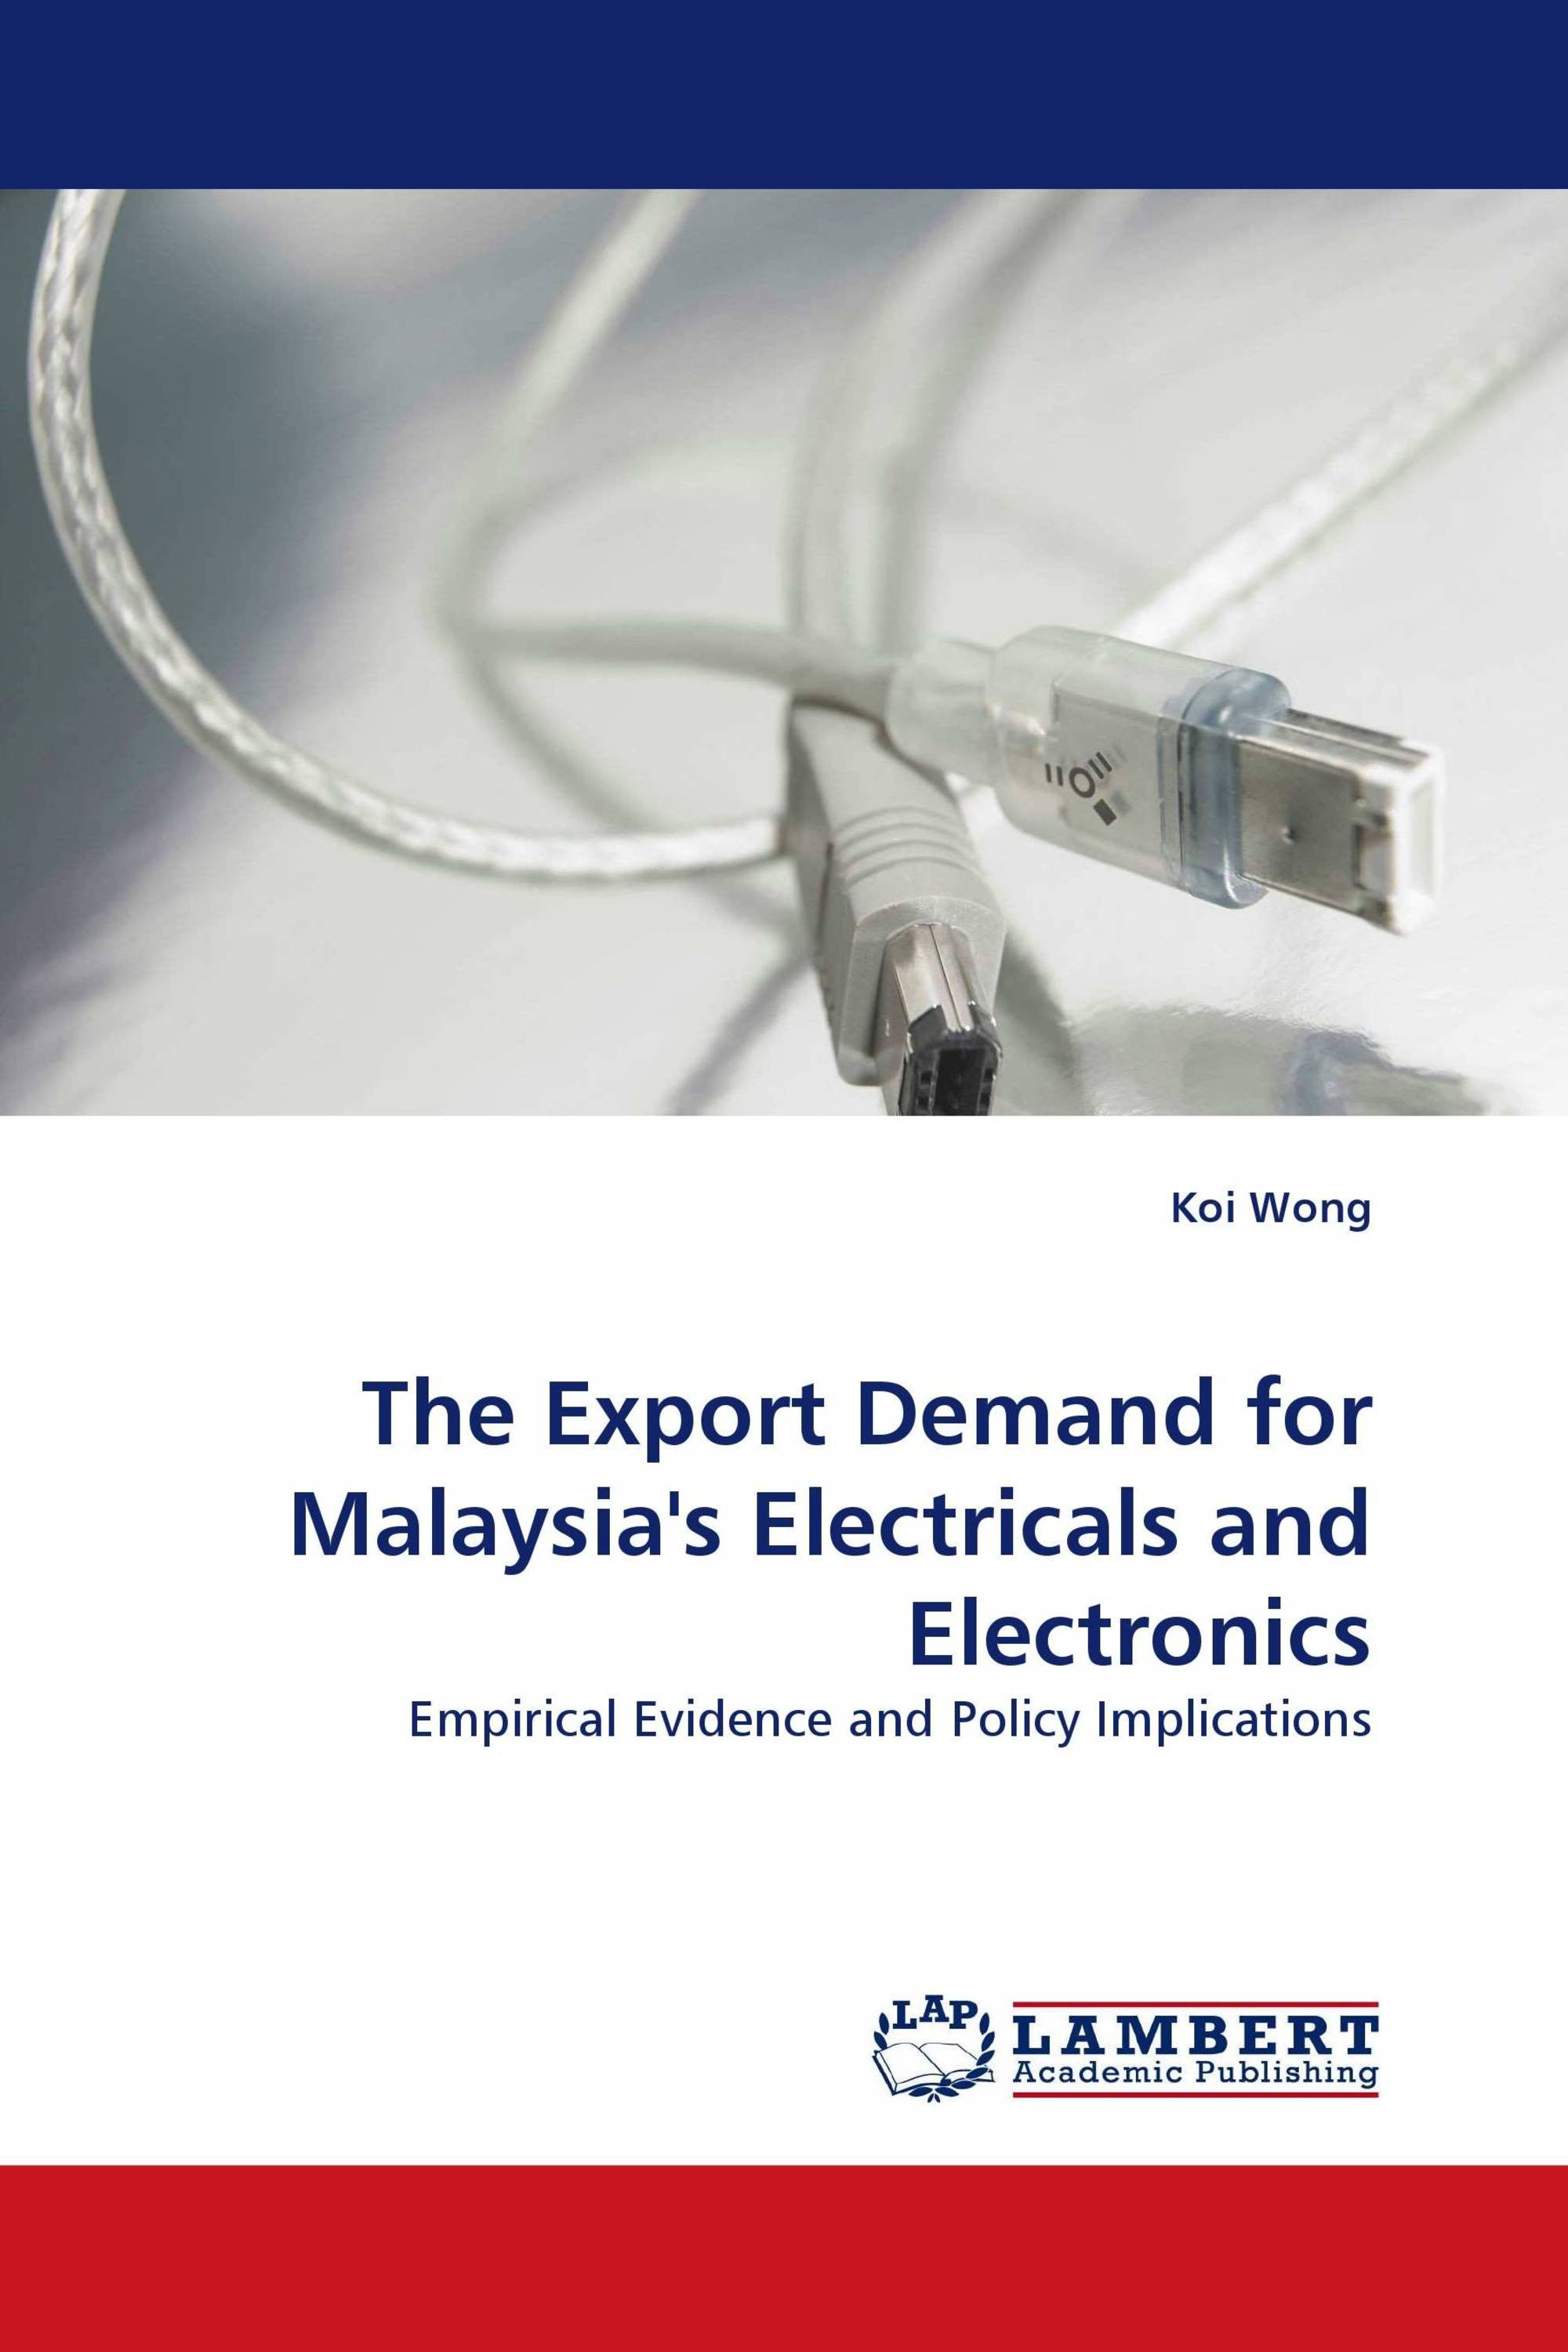 The Export Demand for Malaysia''s Electricals and Electronics